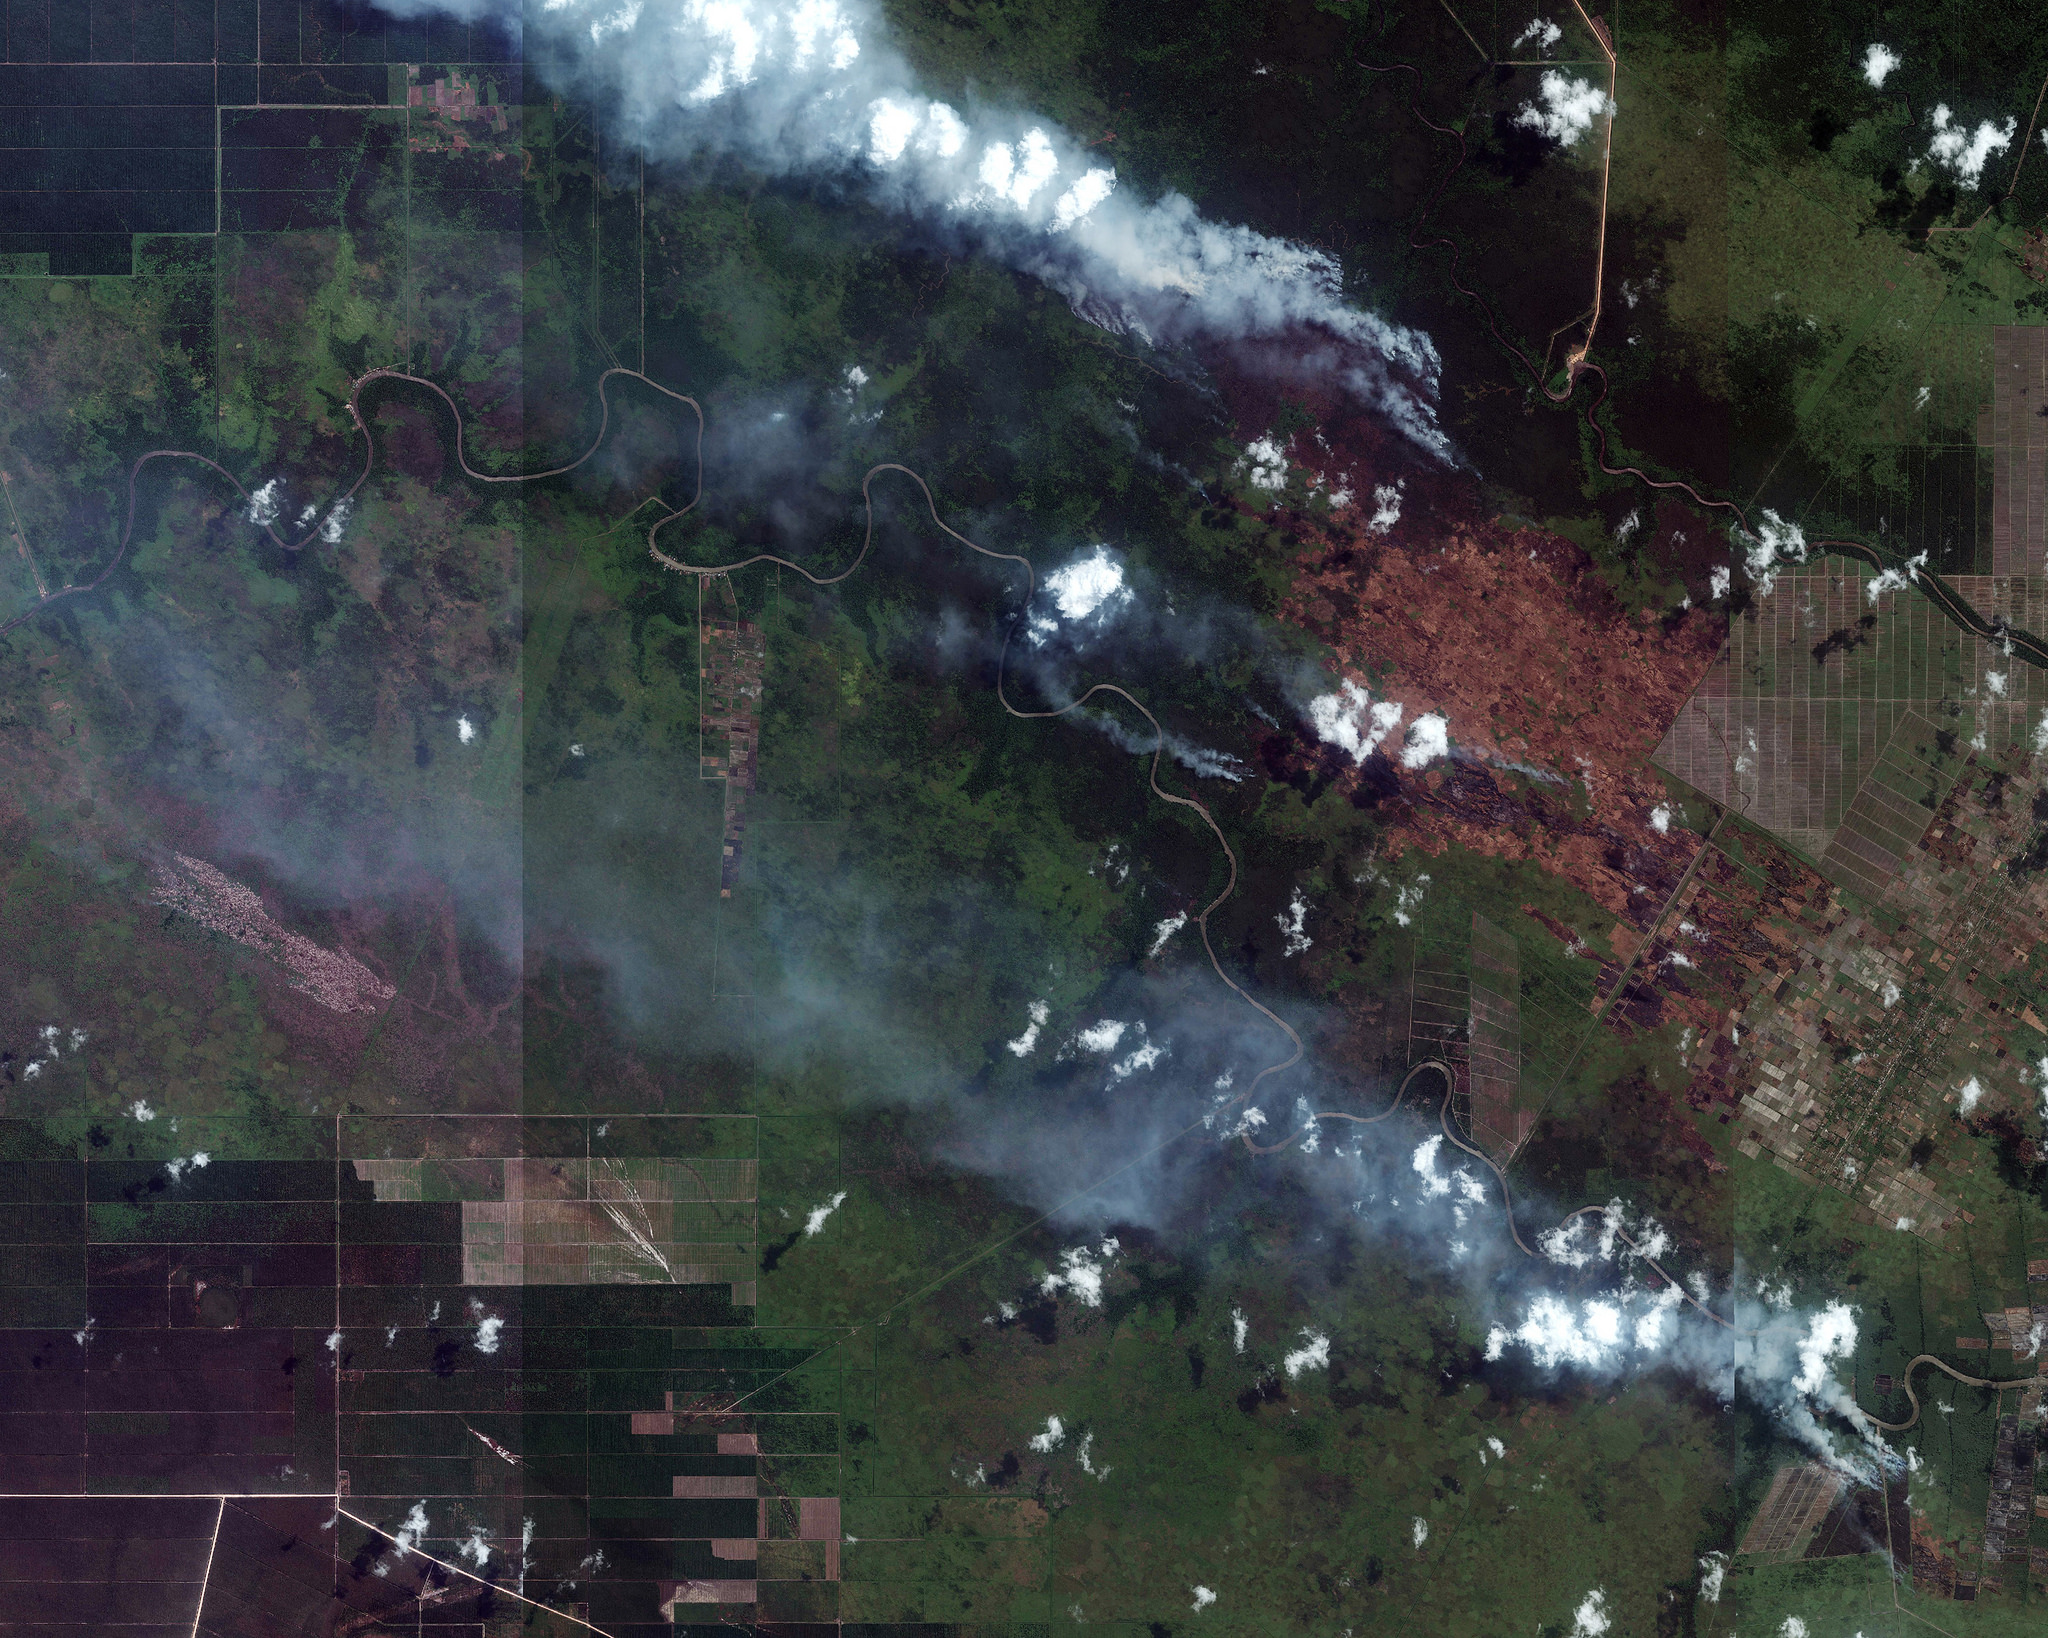 <p>Active fires burning amid plantation development in South Sumatra on September 10th were captured in this image by Digital Globe's WorldView-2 satellite. (Lat -3.275, Lon 105.75; view active fires in this location on GFW Fires)</p>